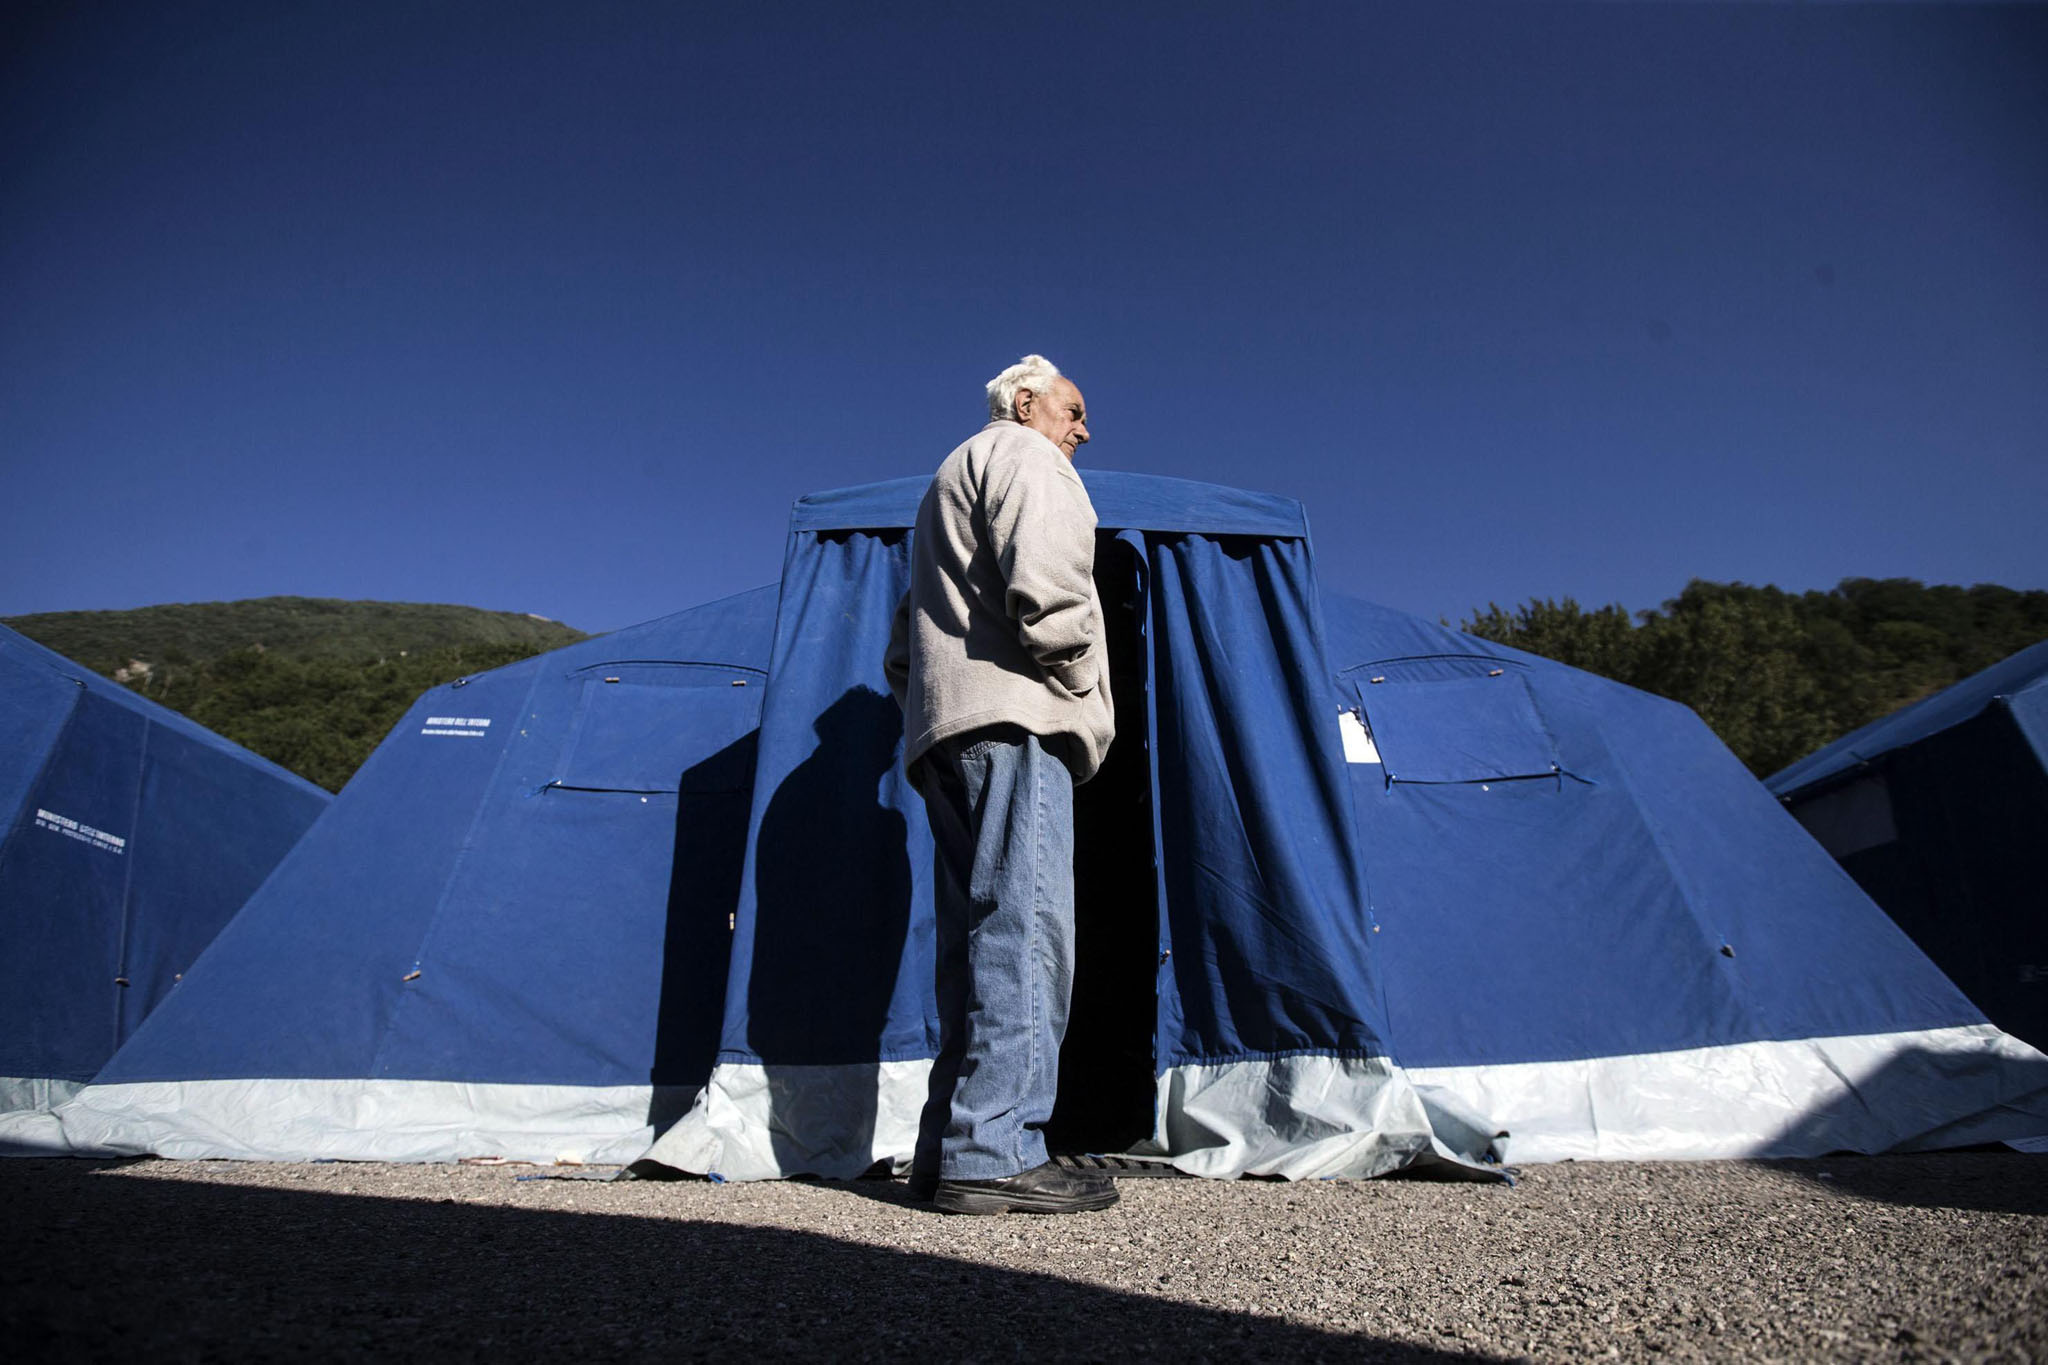 A man is seen in front of a tent in a temporary shelter for the earthquake victims in Amitrice, Italy